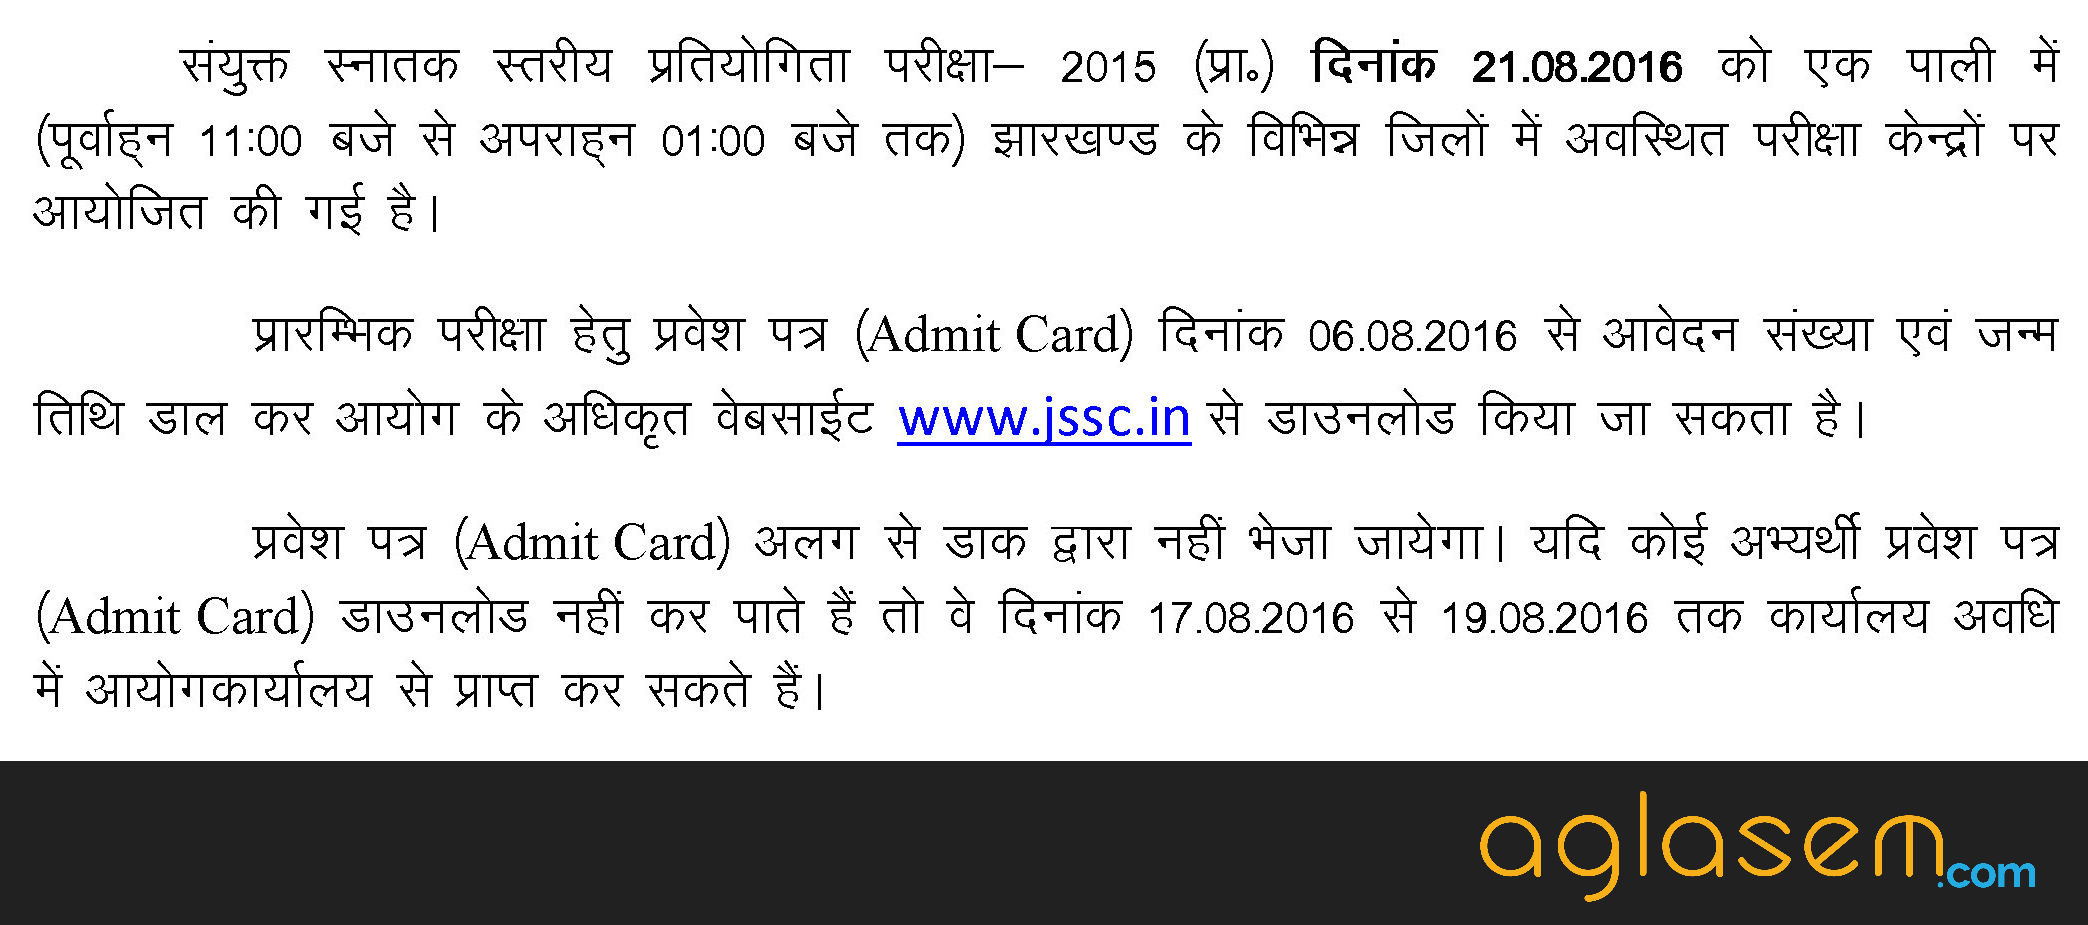 JSSC CGL (CGSCE) Admit Card 2016 – Download Here